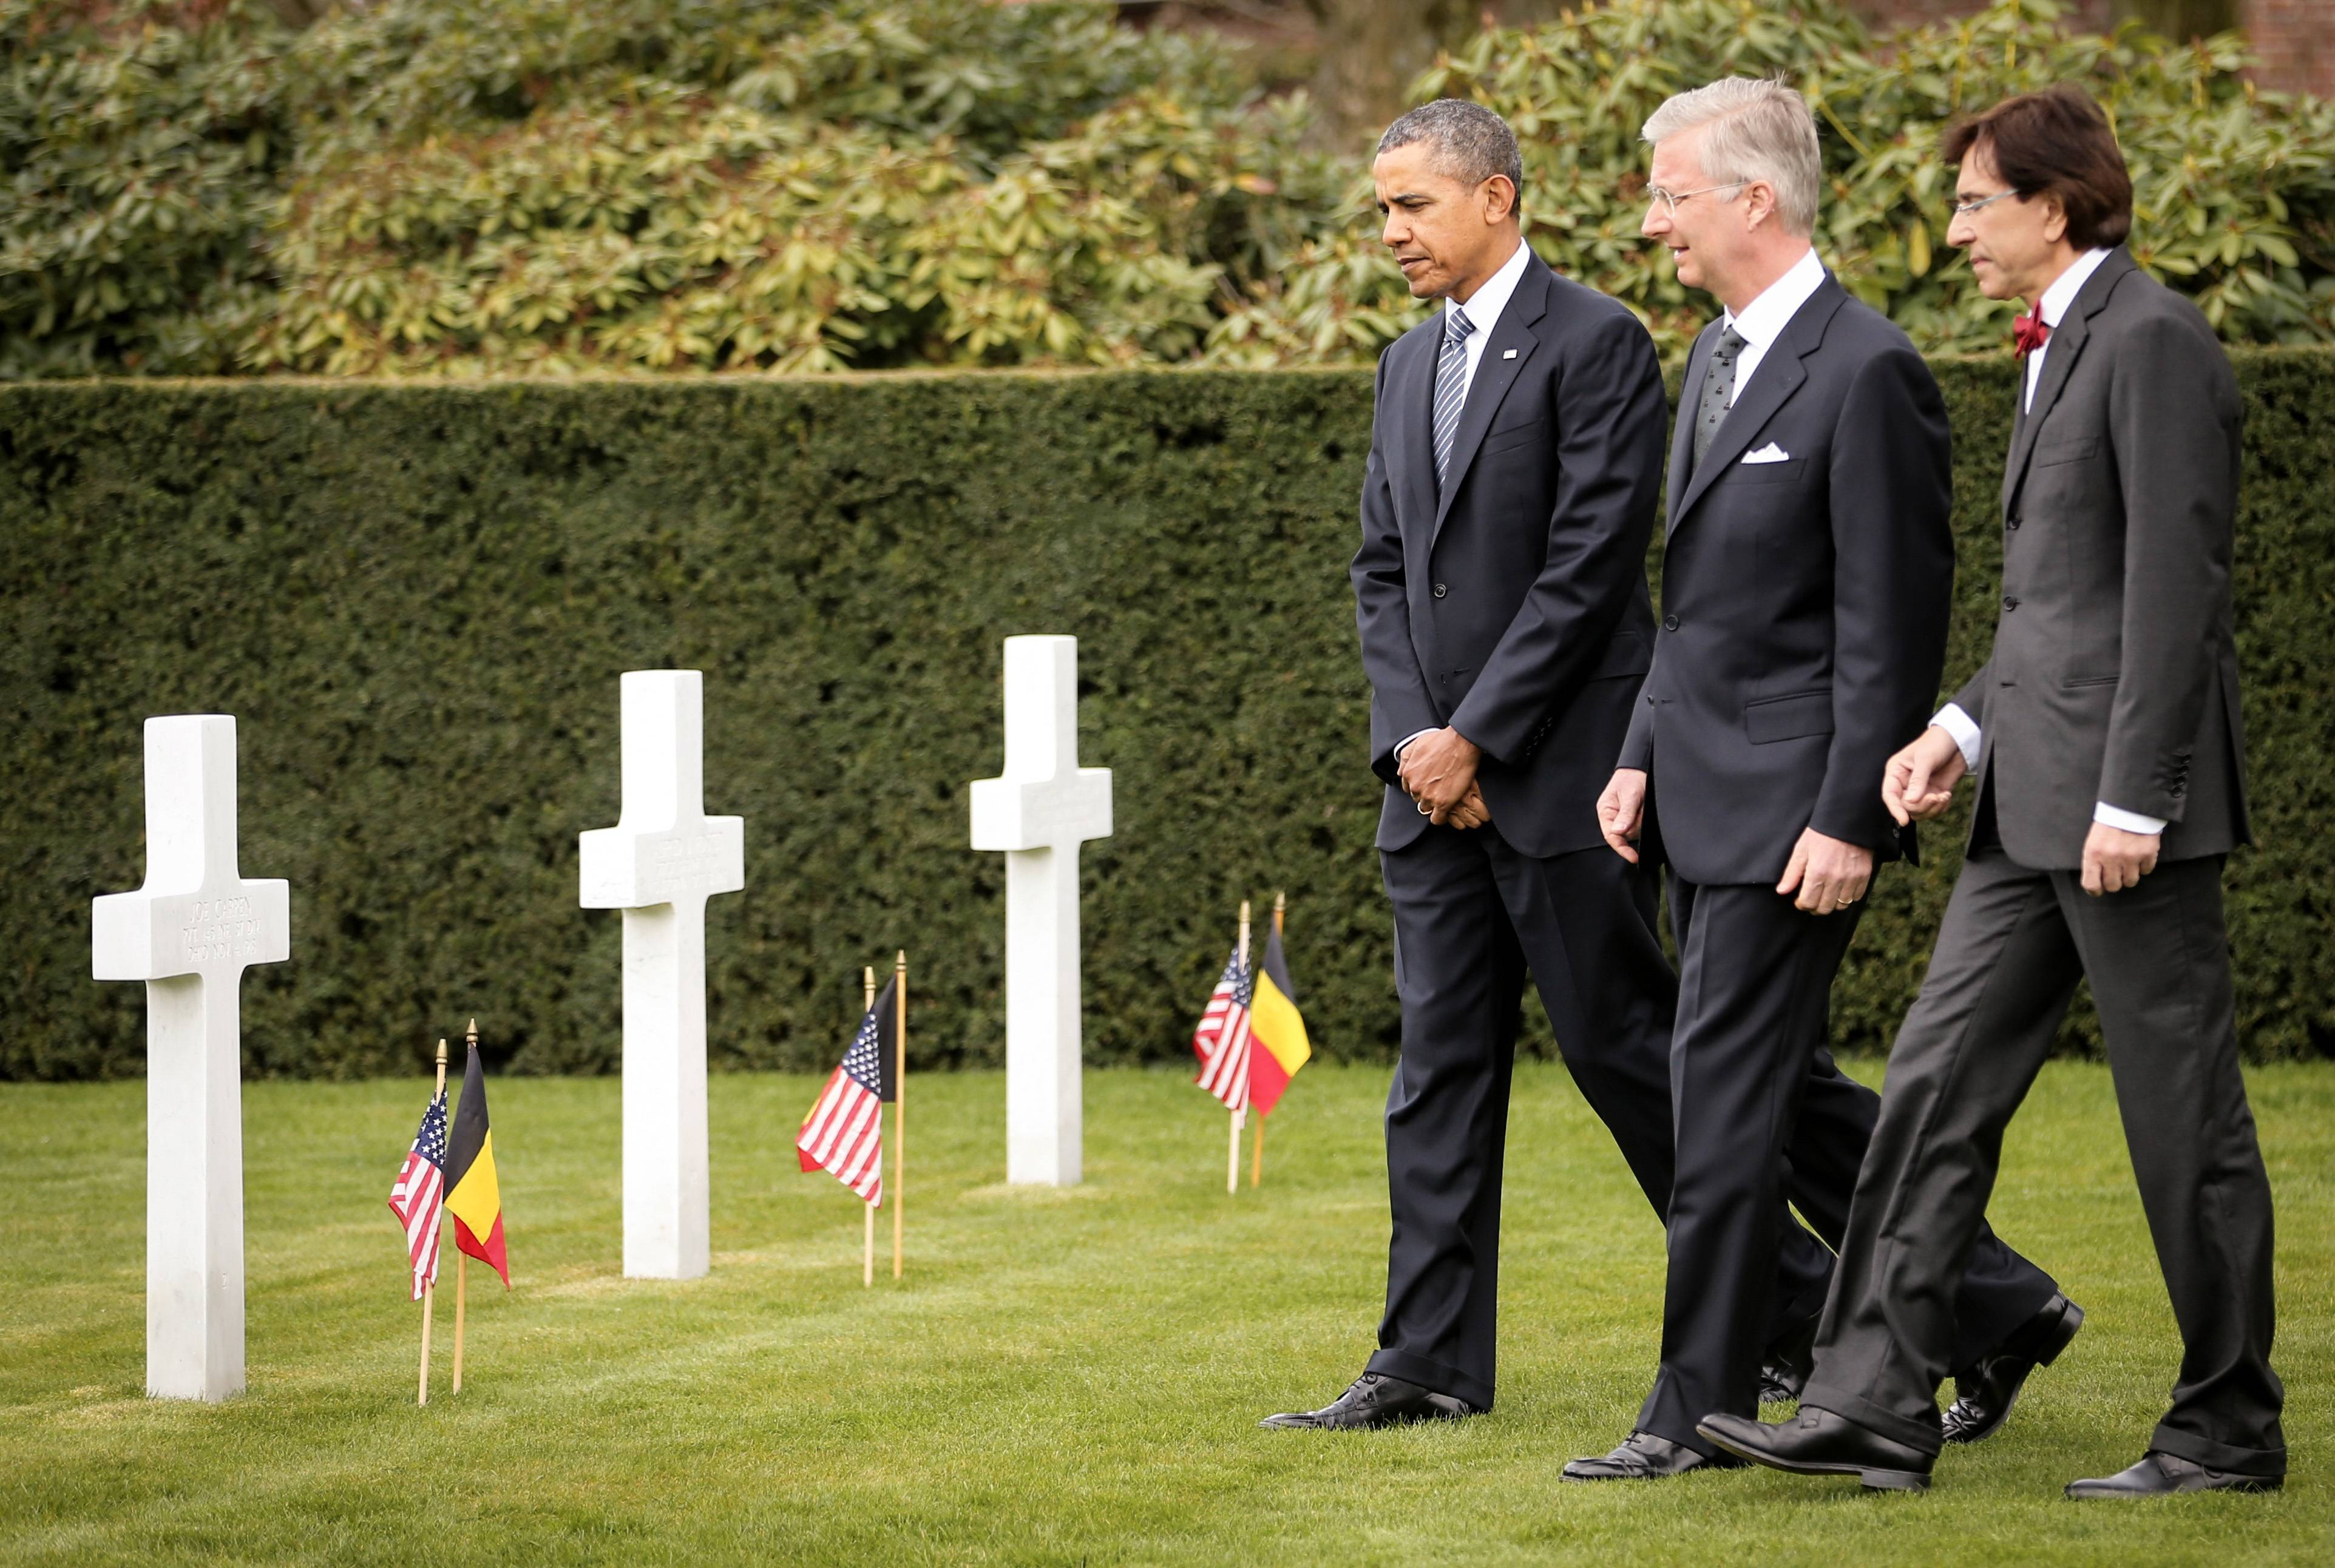 President Barack Obama walks among gravestones of World War I soldiers at the World War I Flanders Field American Cemetery in Waregem, Belgium. The cemetery contains the remains of 368 U.S. WWI military and support personnel. Of those remains, 21 are unknown and could not be identified.